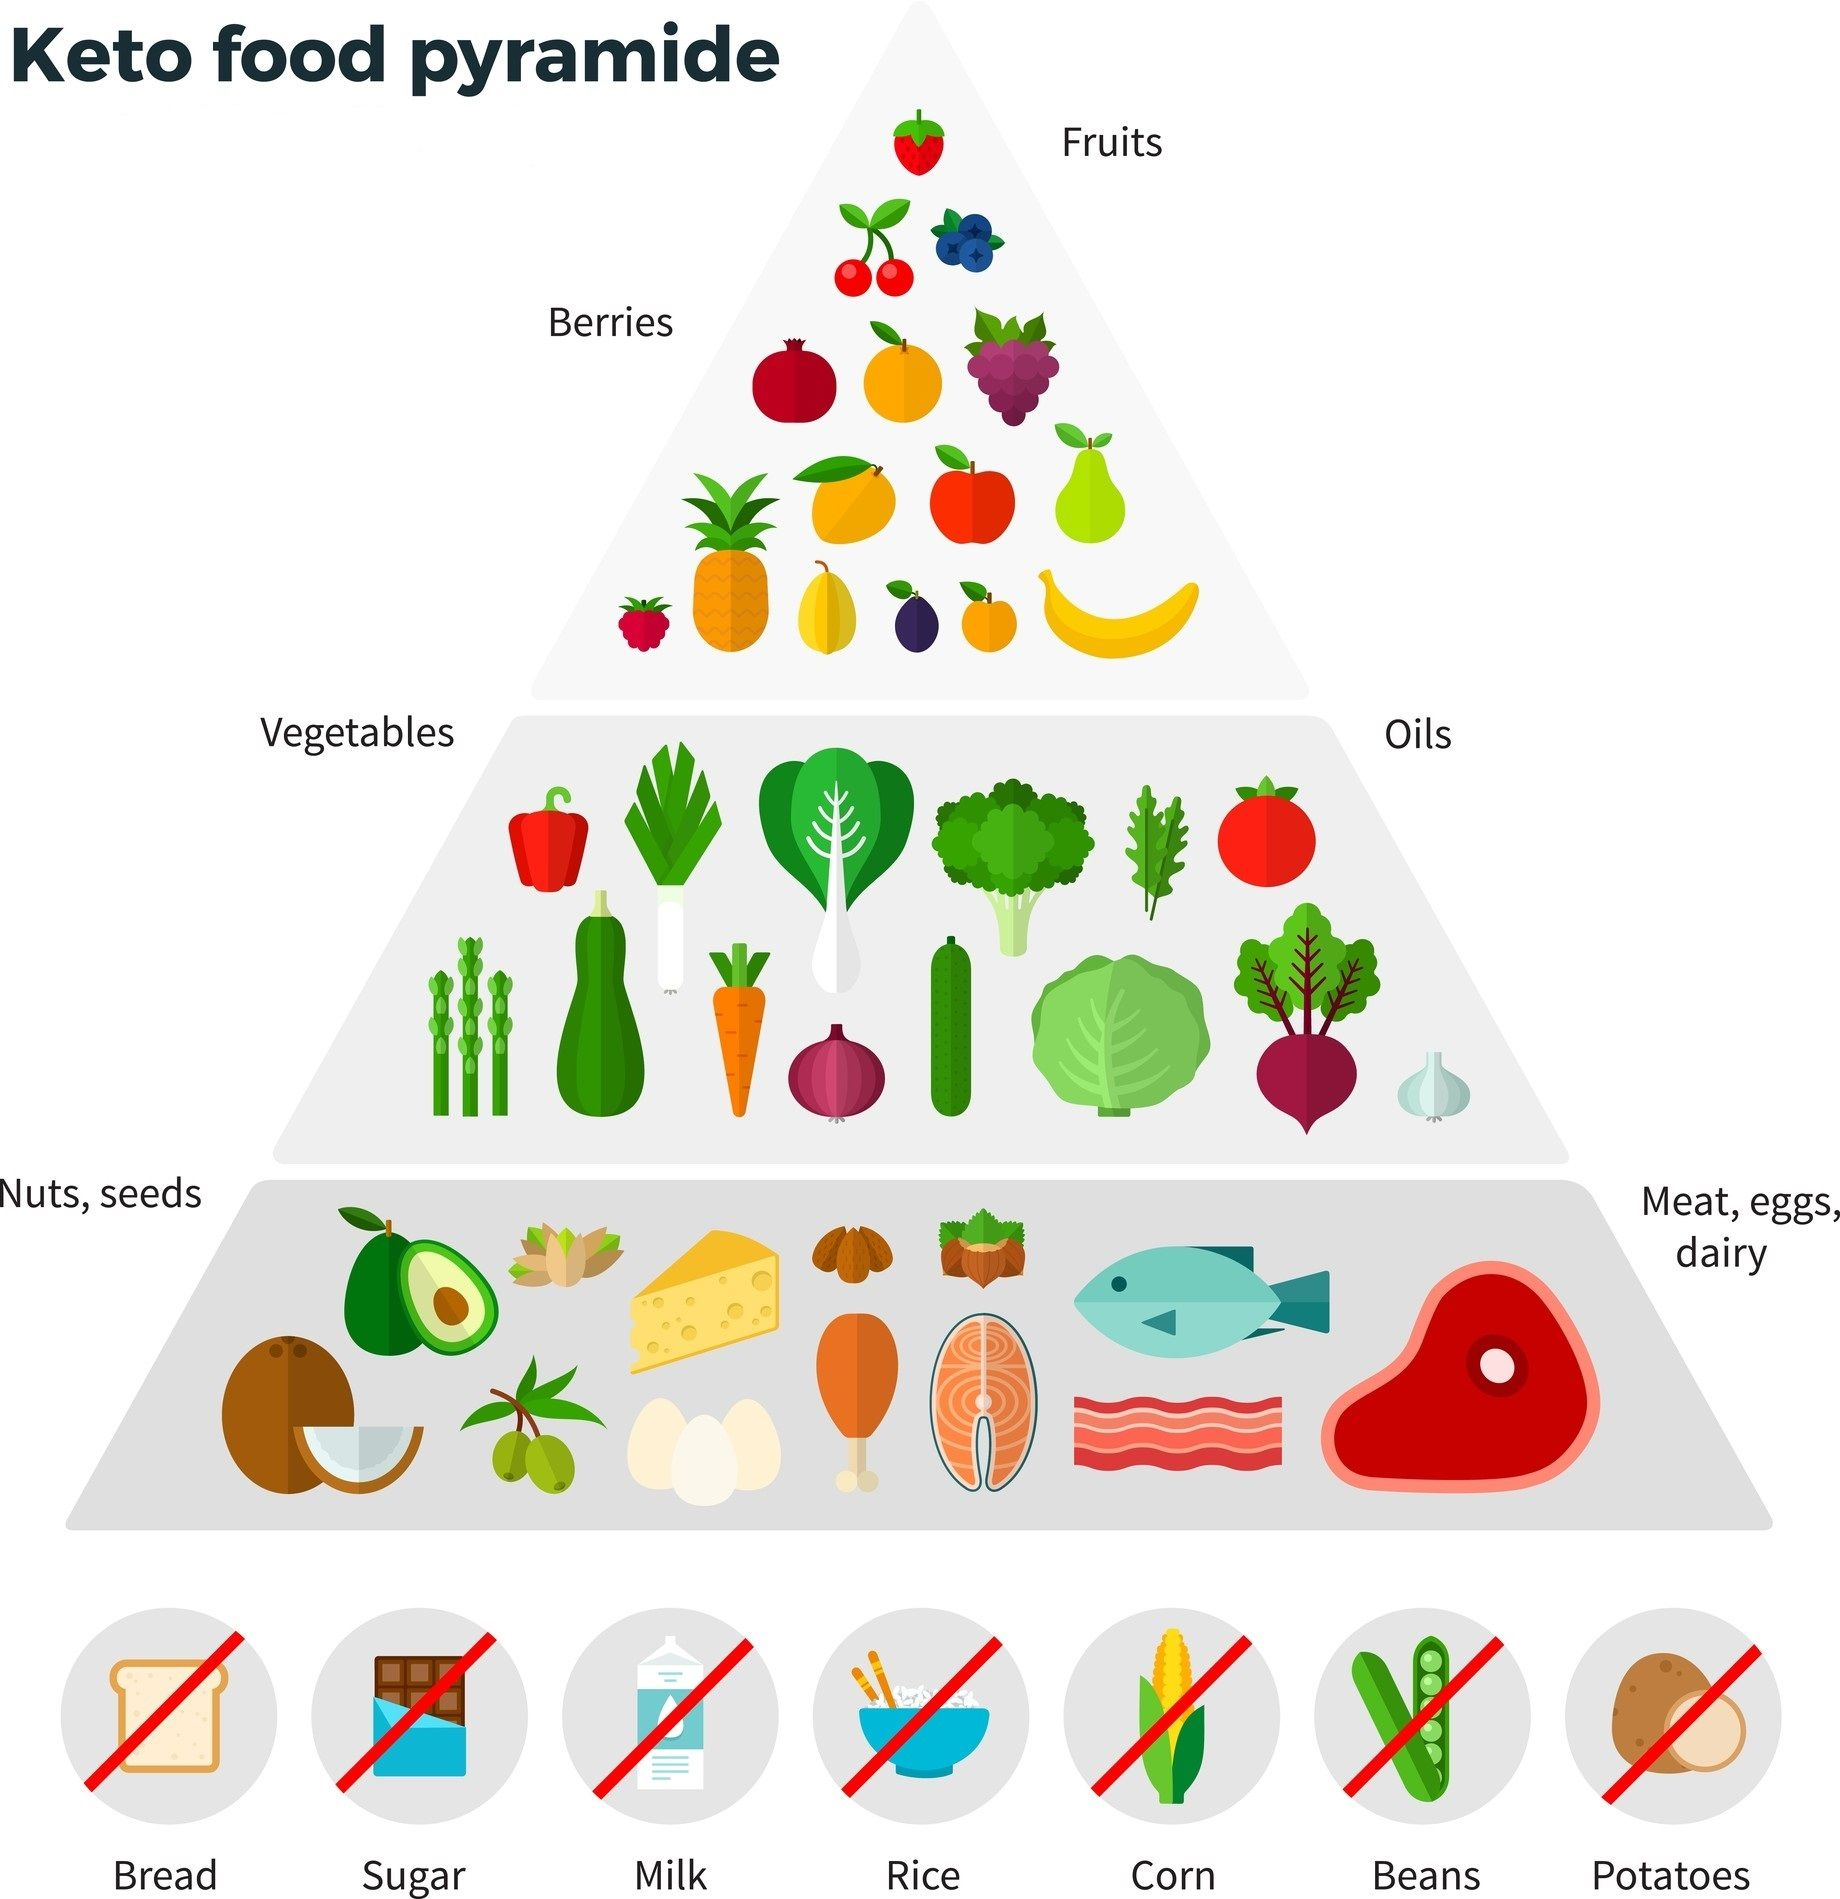 Ketogenic Food Pyramid - Starve Cancer Cells by Ketogenic Diet | Ketogenic Diet to Starve Cancer ...